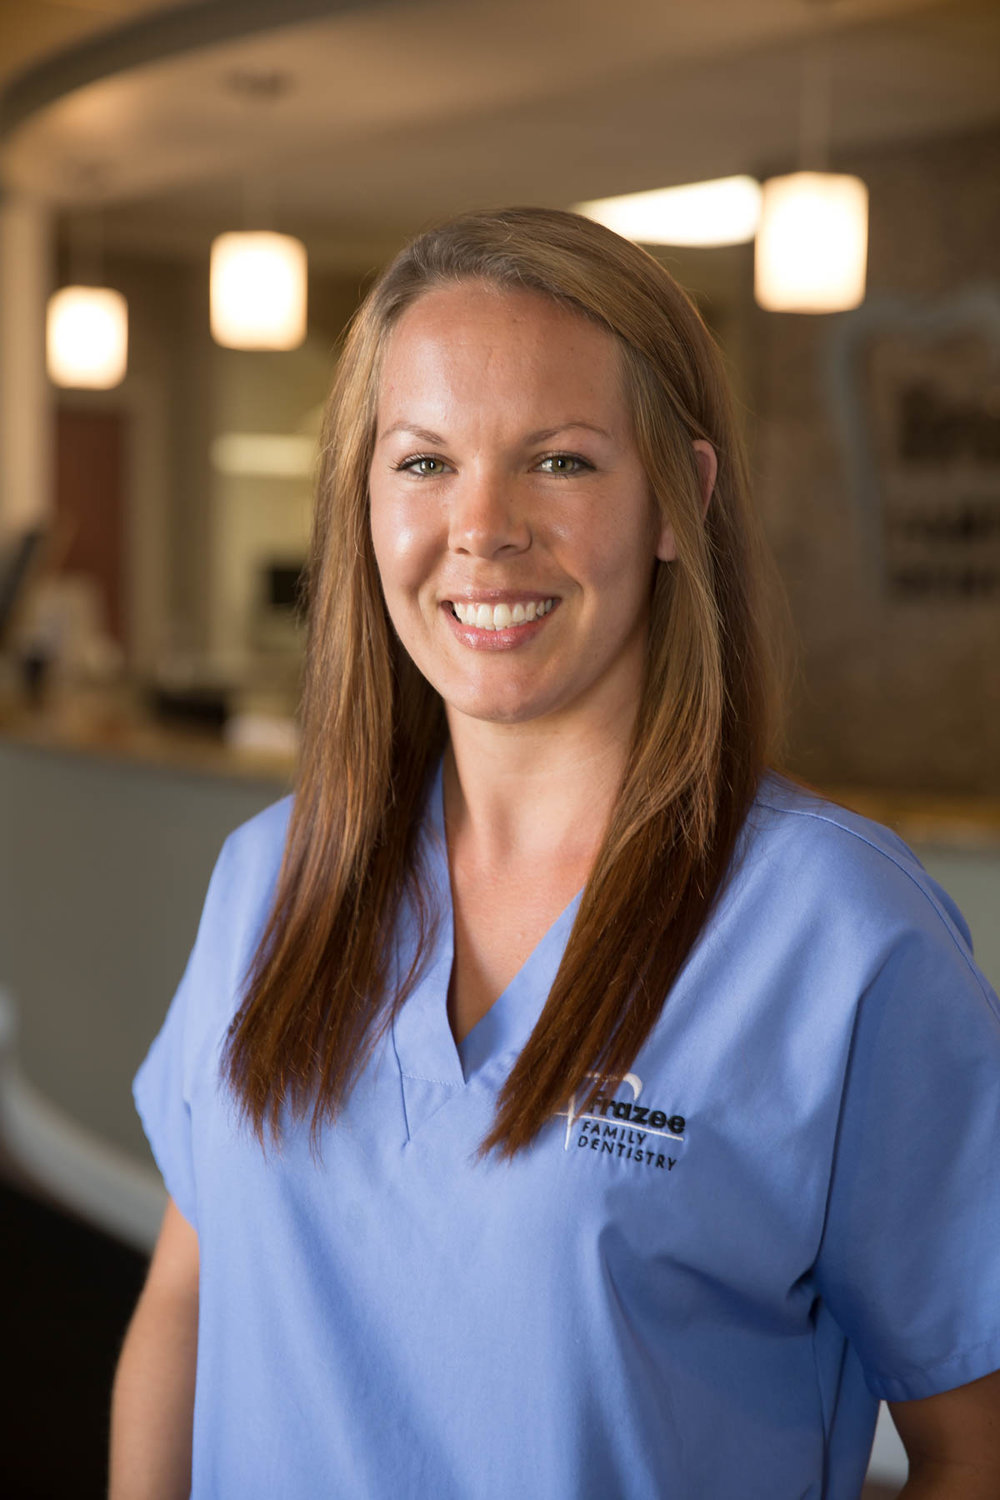 Meet Sierra at Frazee Family Dentistry.